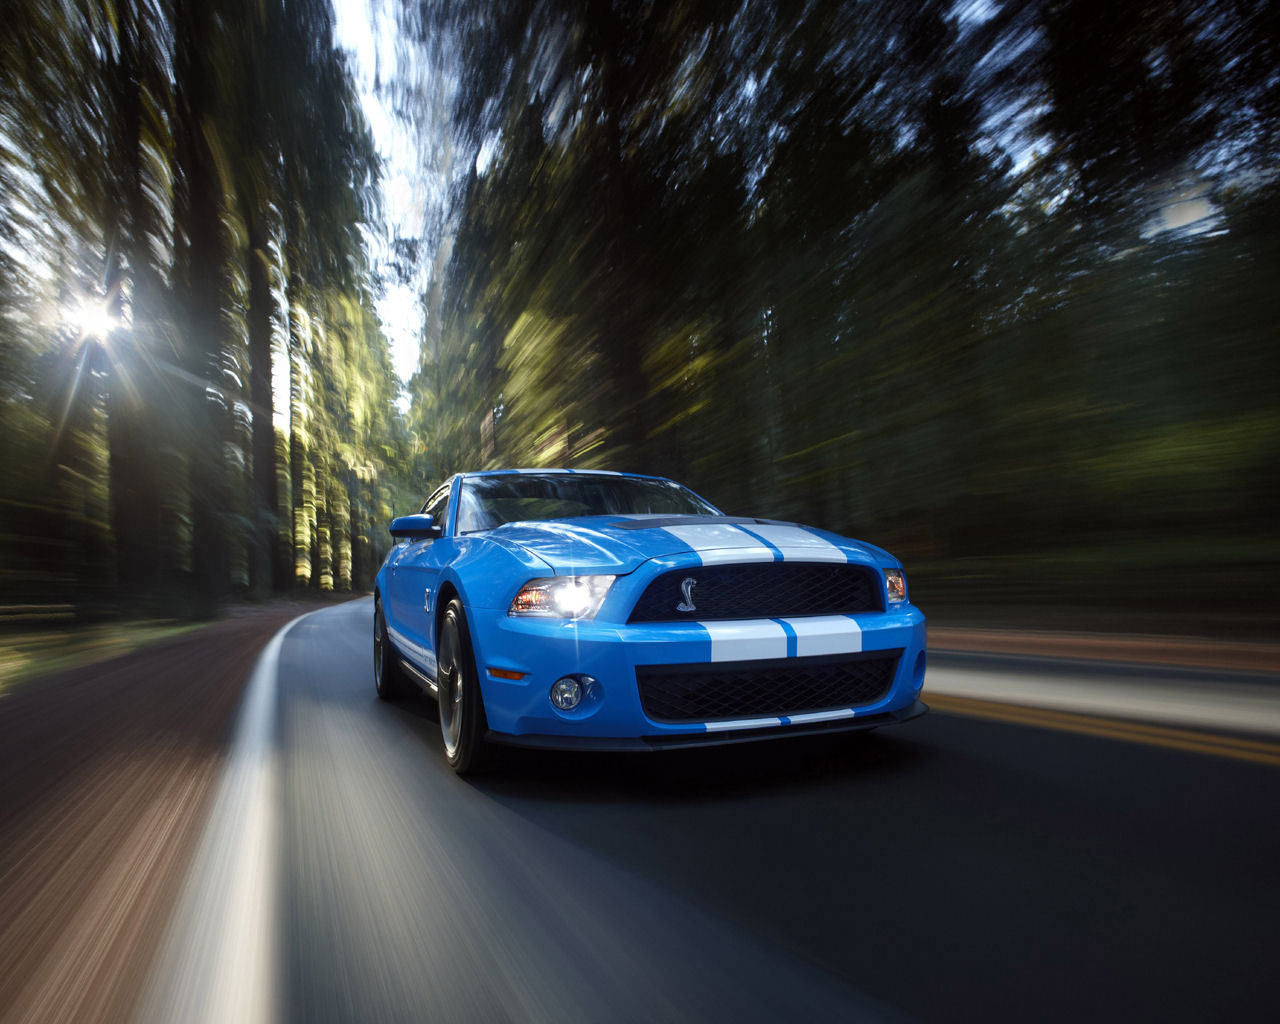 Ford Mustang Wallpaper Desktop Inspiration Wallpapers 1280x1024